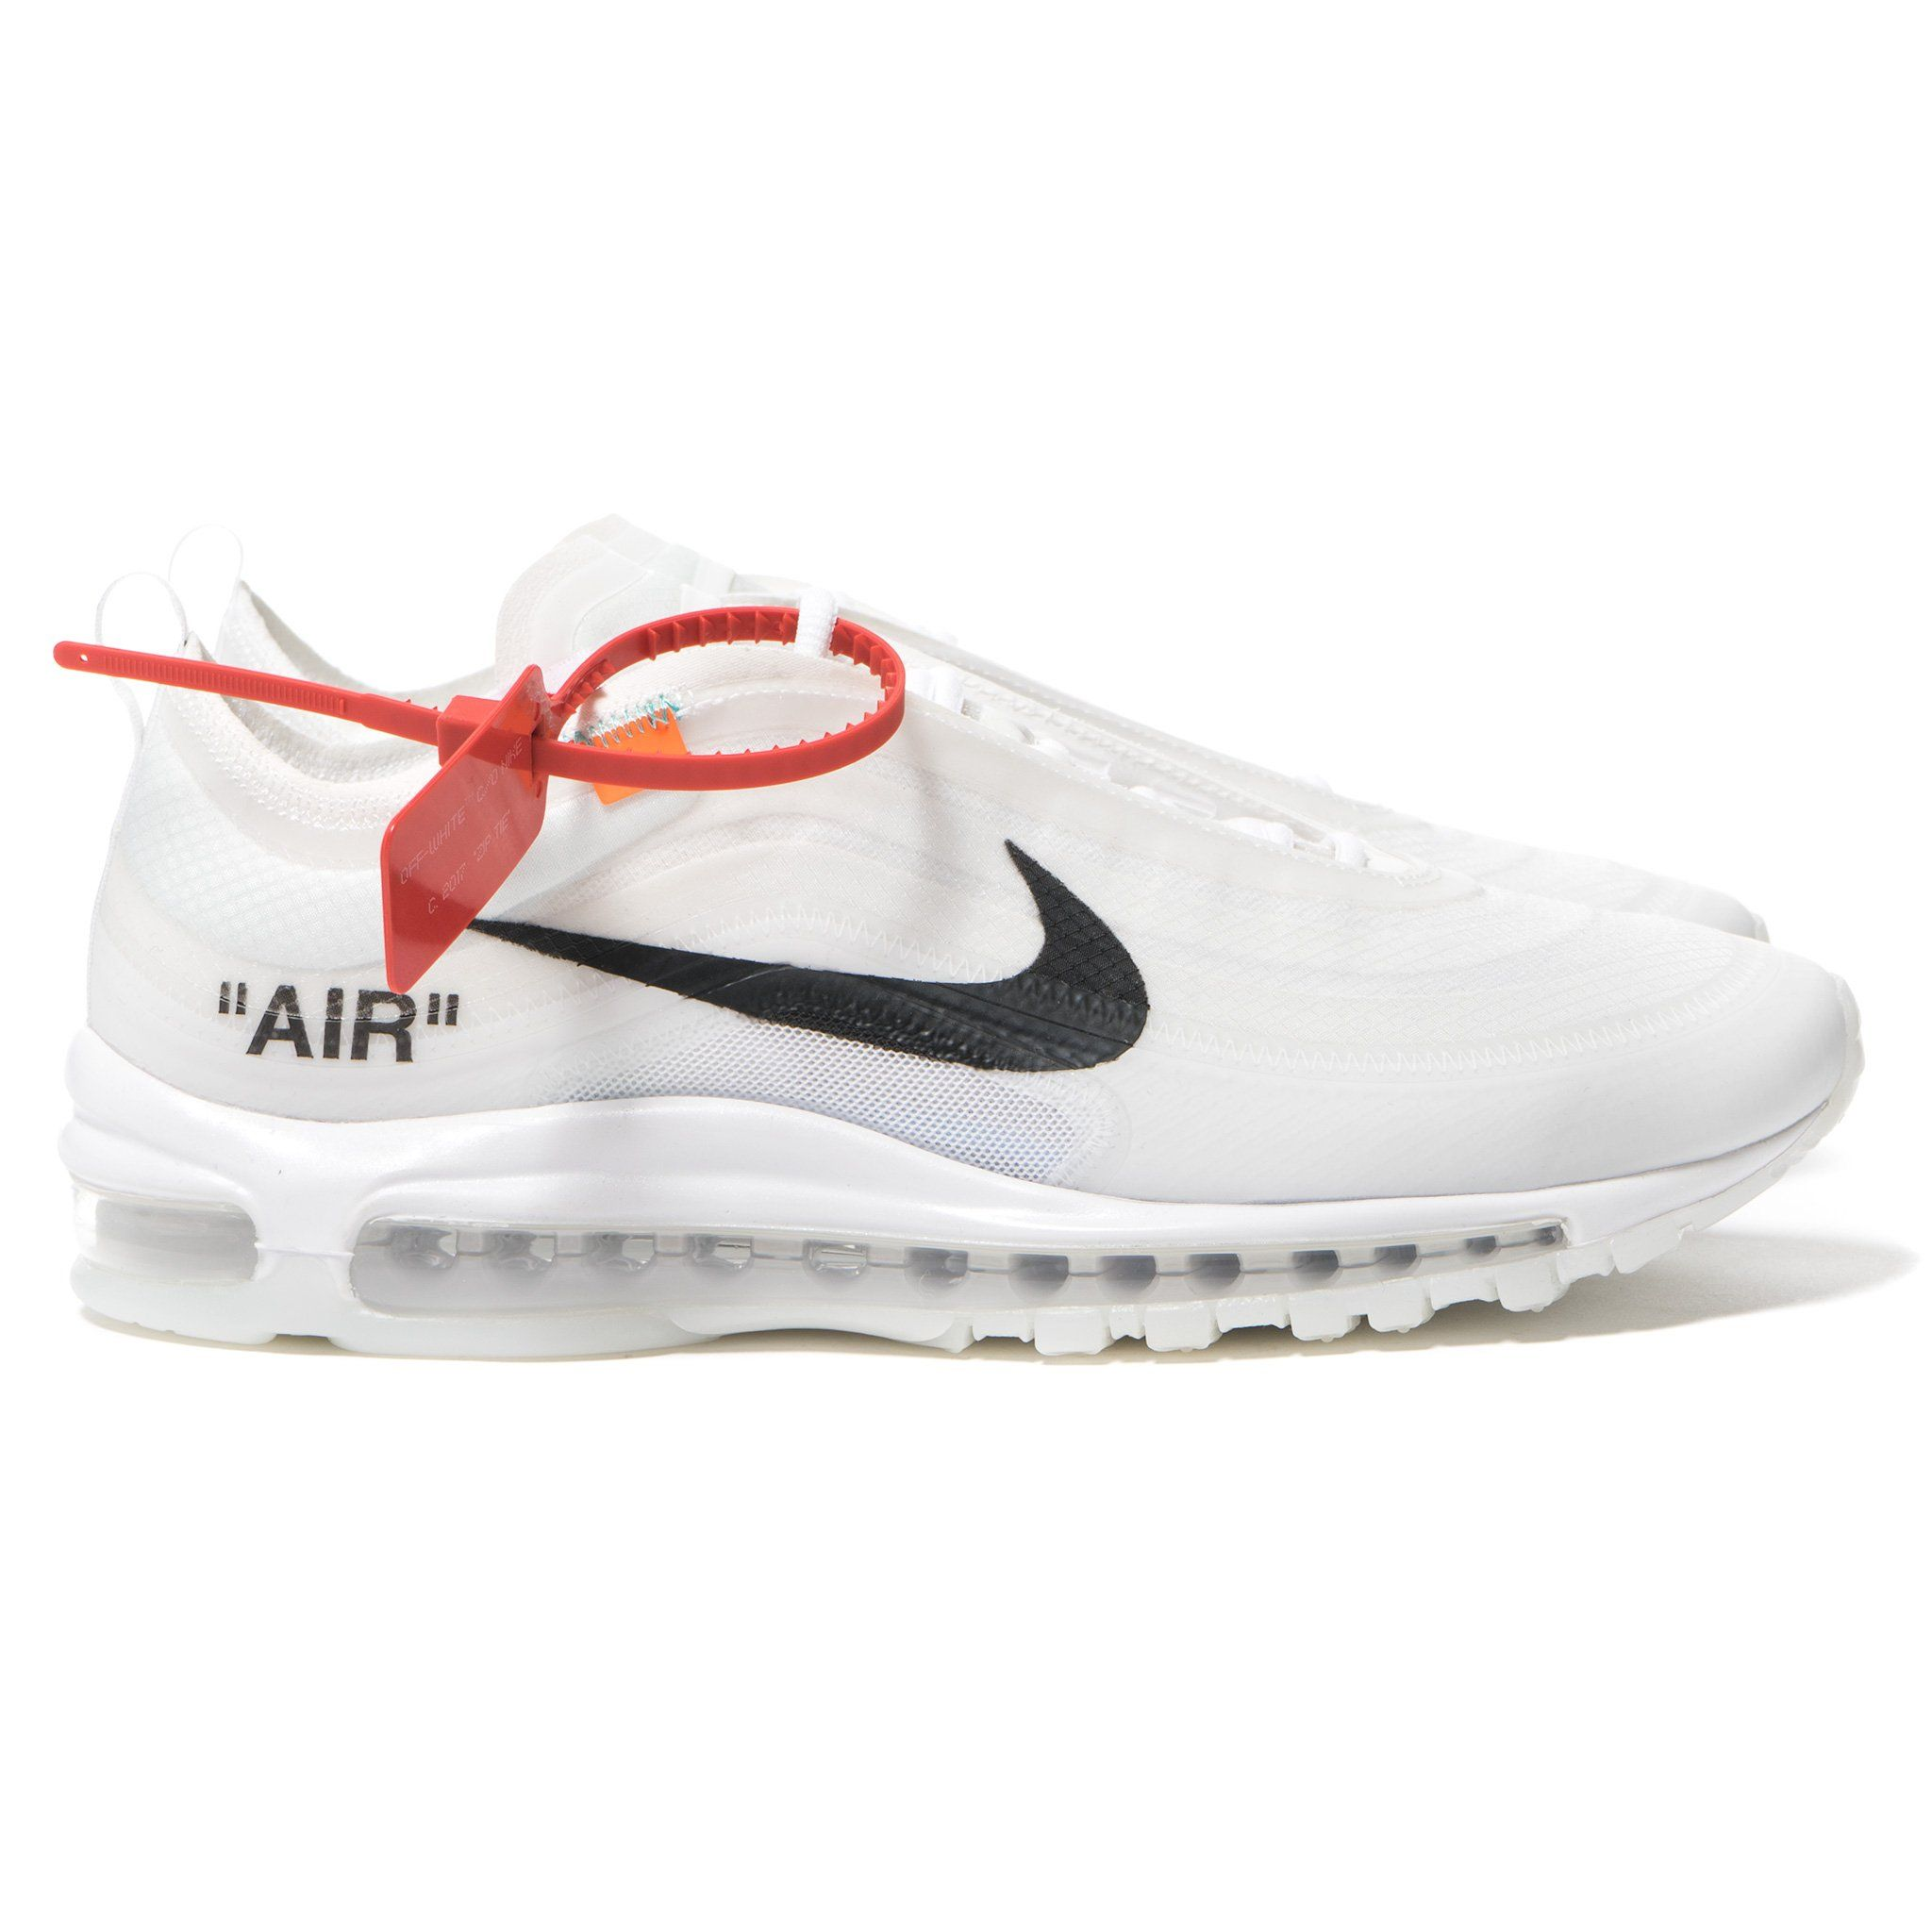 Nike x Virgil Abloh The Ten - Air Max 97 OG